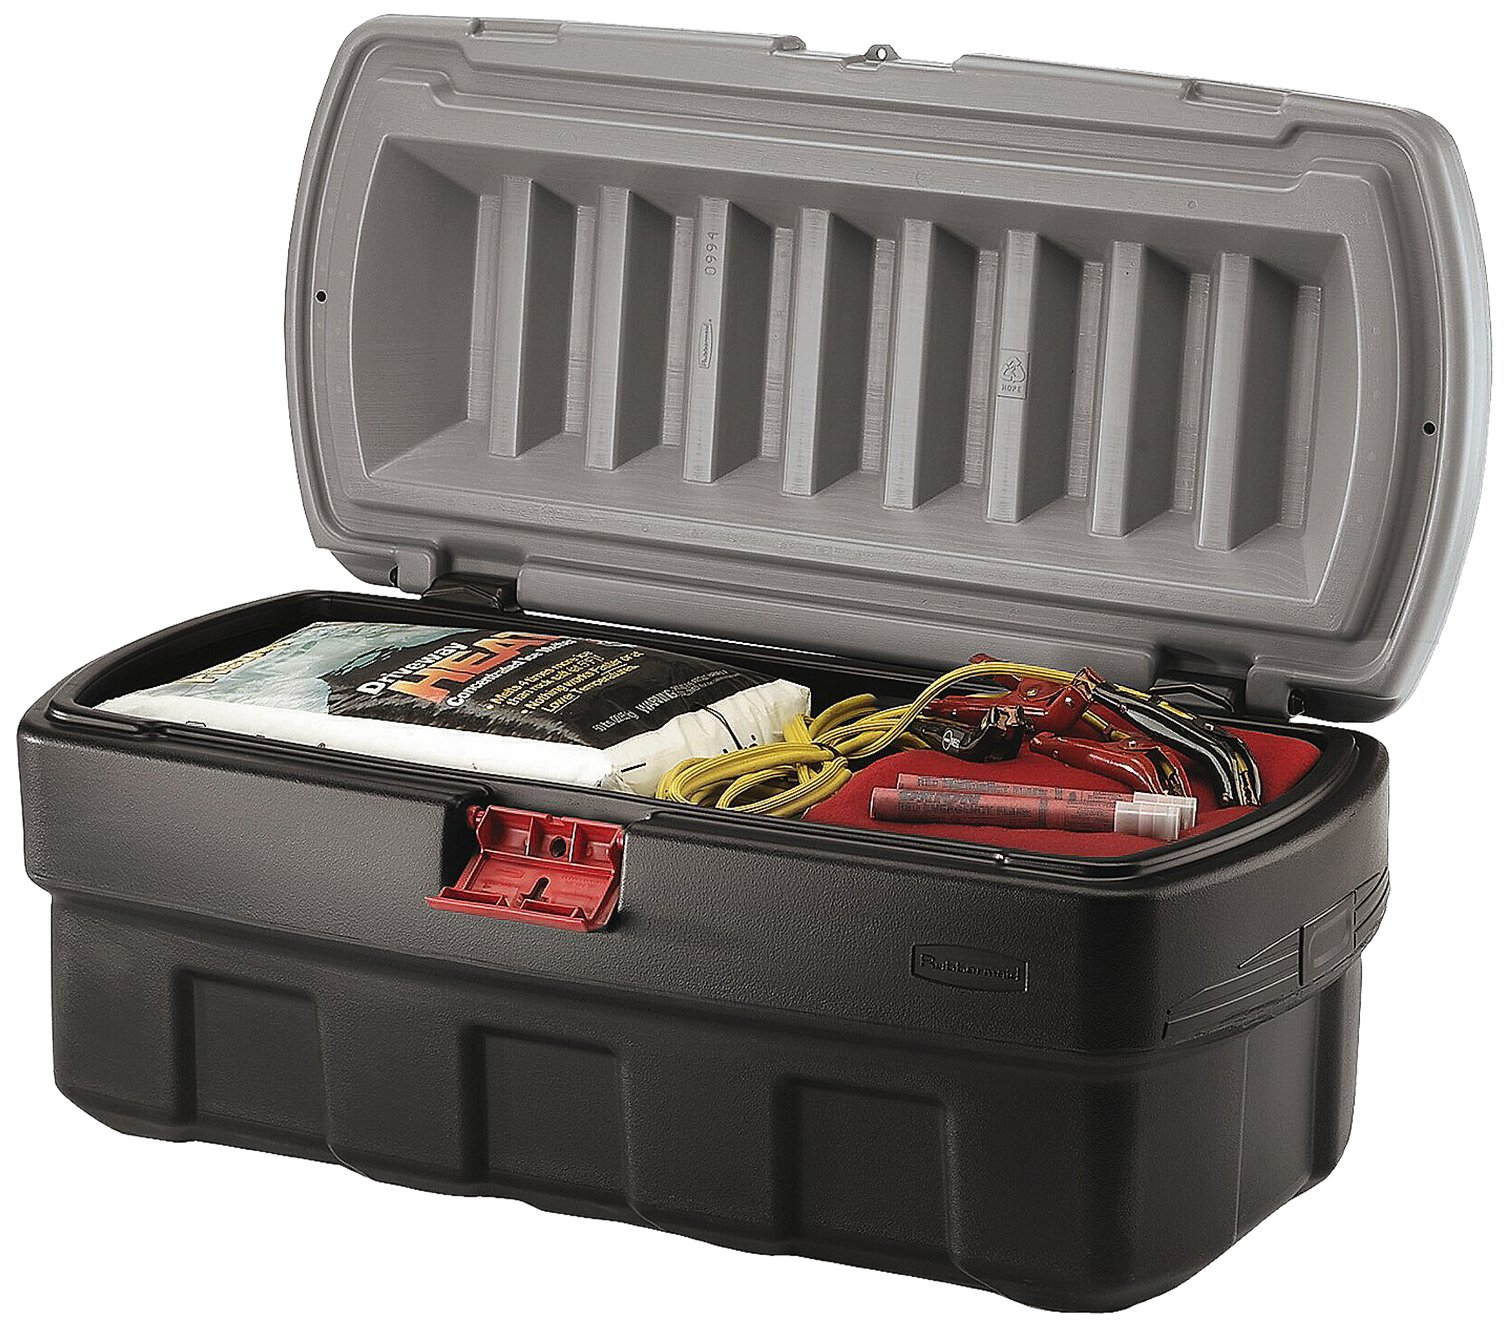 Rubbermaid ActionPacker Lockable Storage Box, 48 Gallon, Grey and Black (1949210)